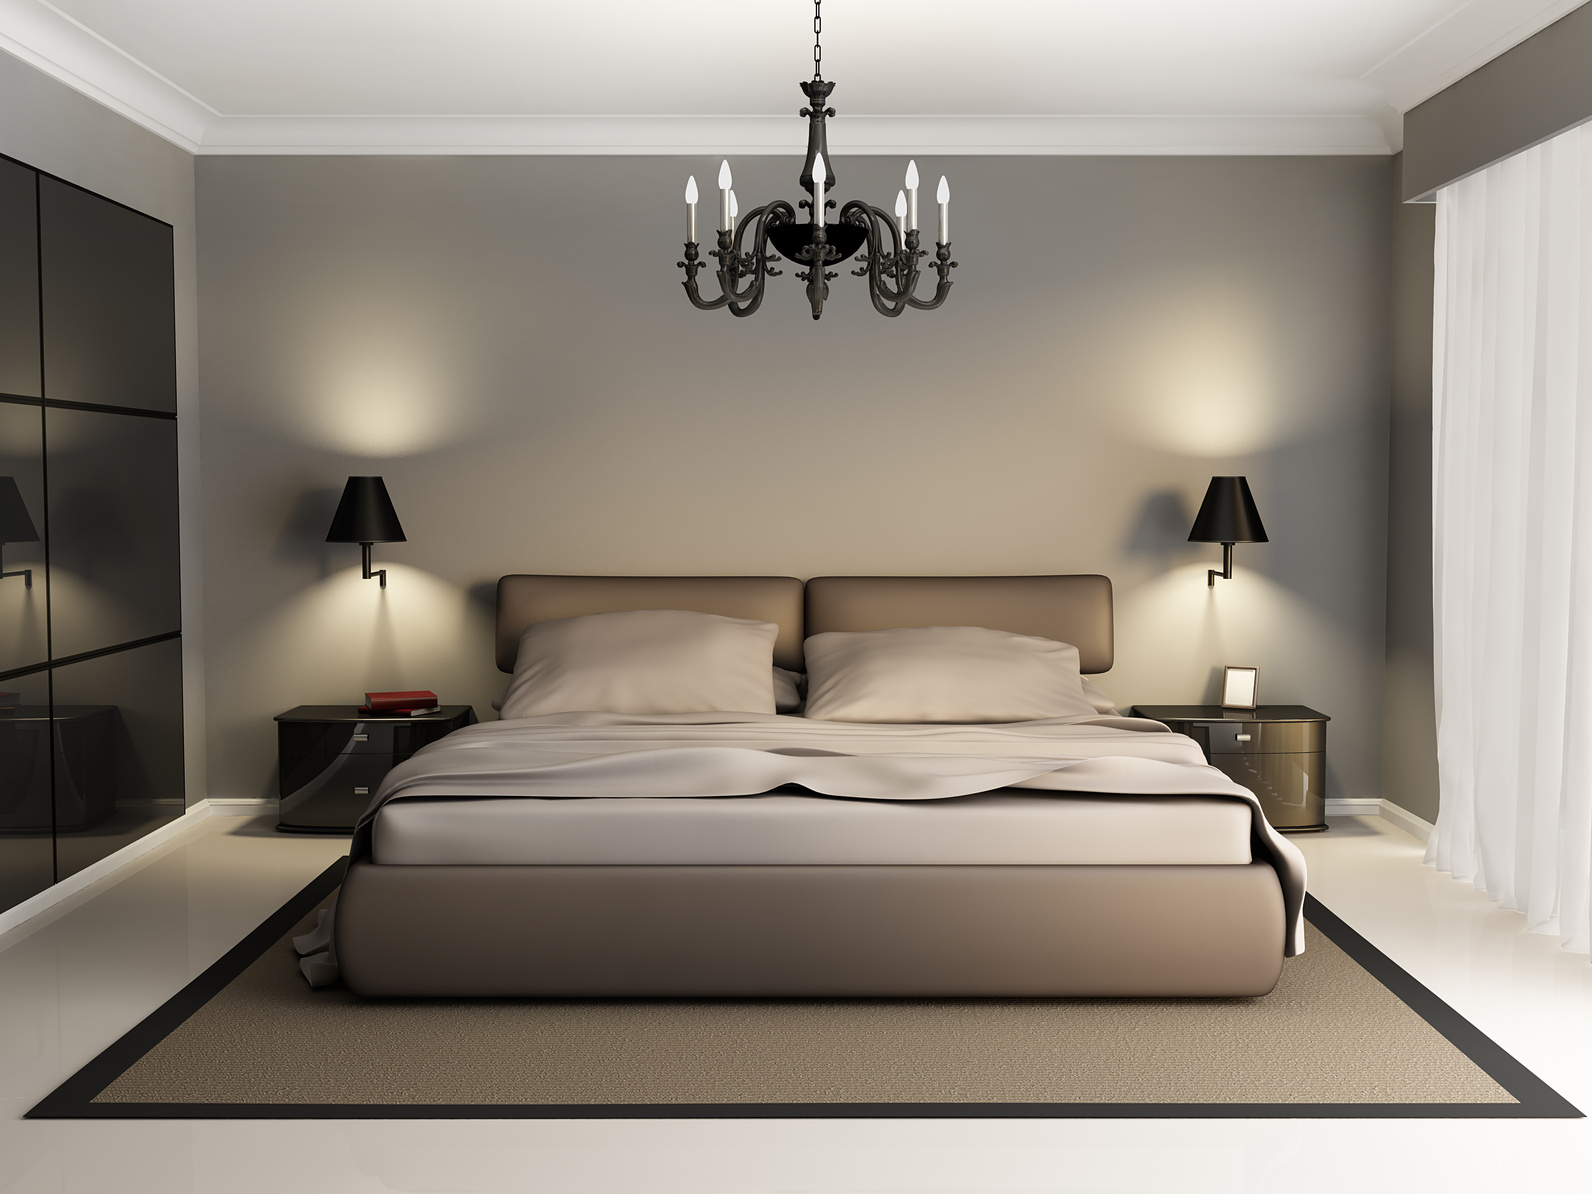 Modern luxury elegant bedroom interior, chandelier front